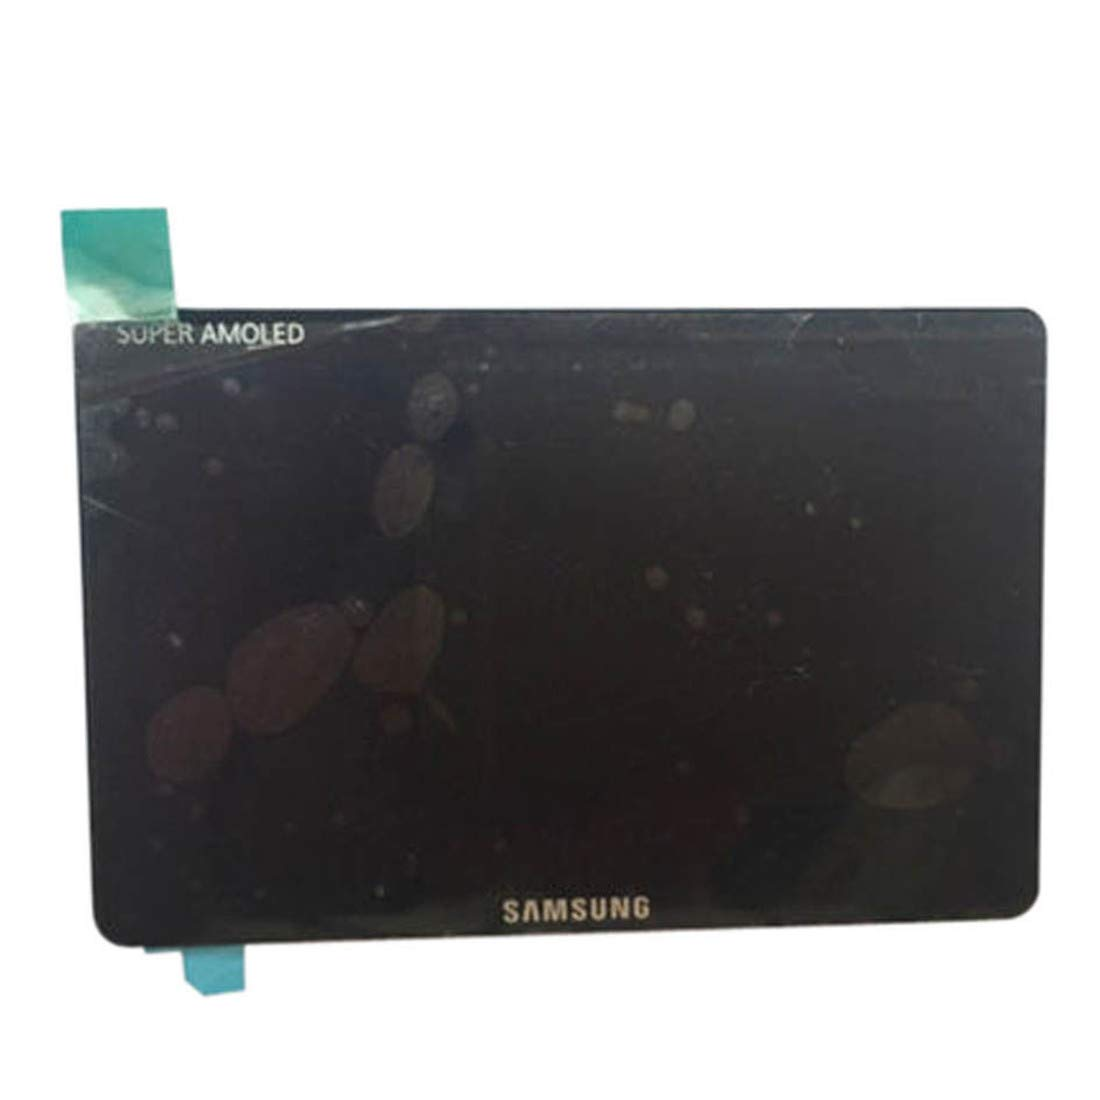 Replacement New Camera LCD Display Screen Monitor for Samsung NX500 NX1 by mEOZIADao